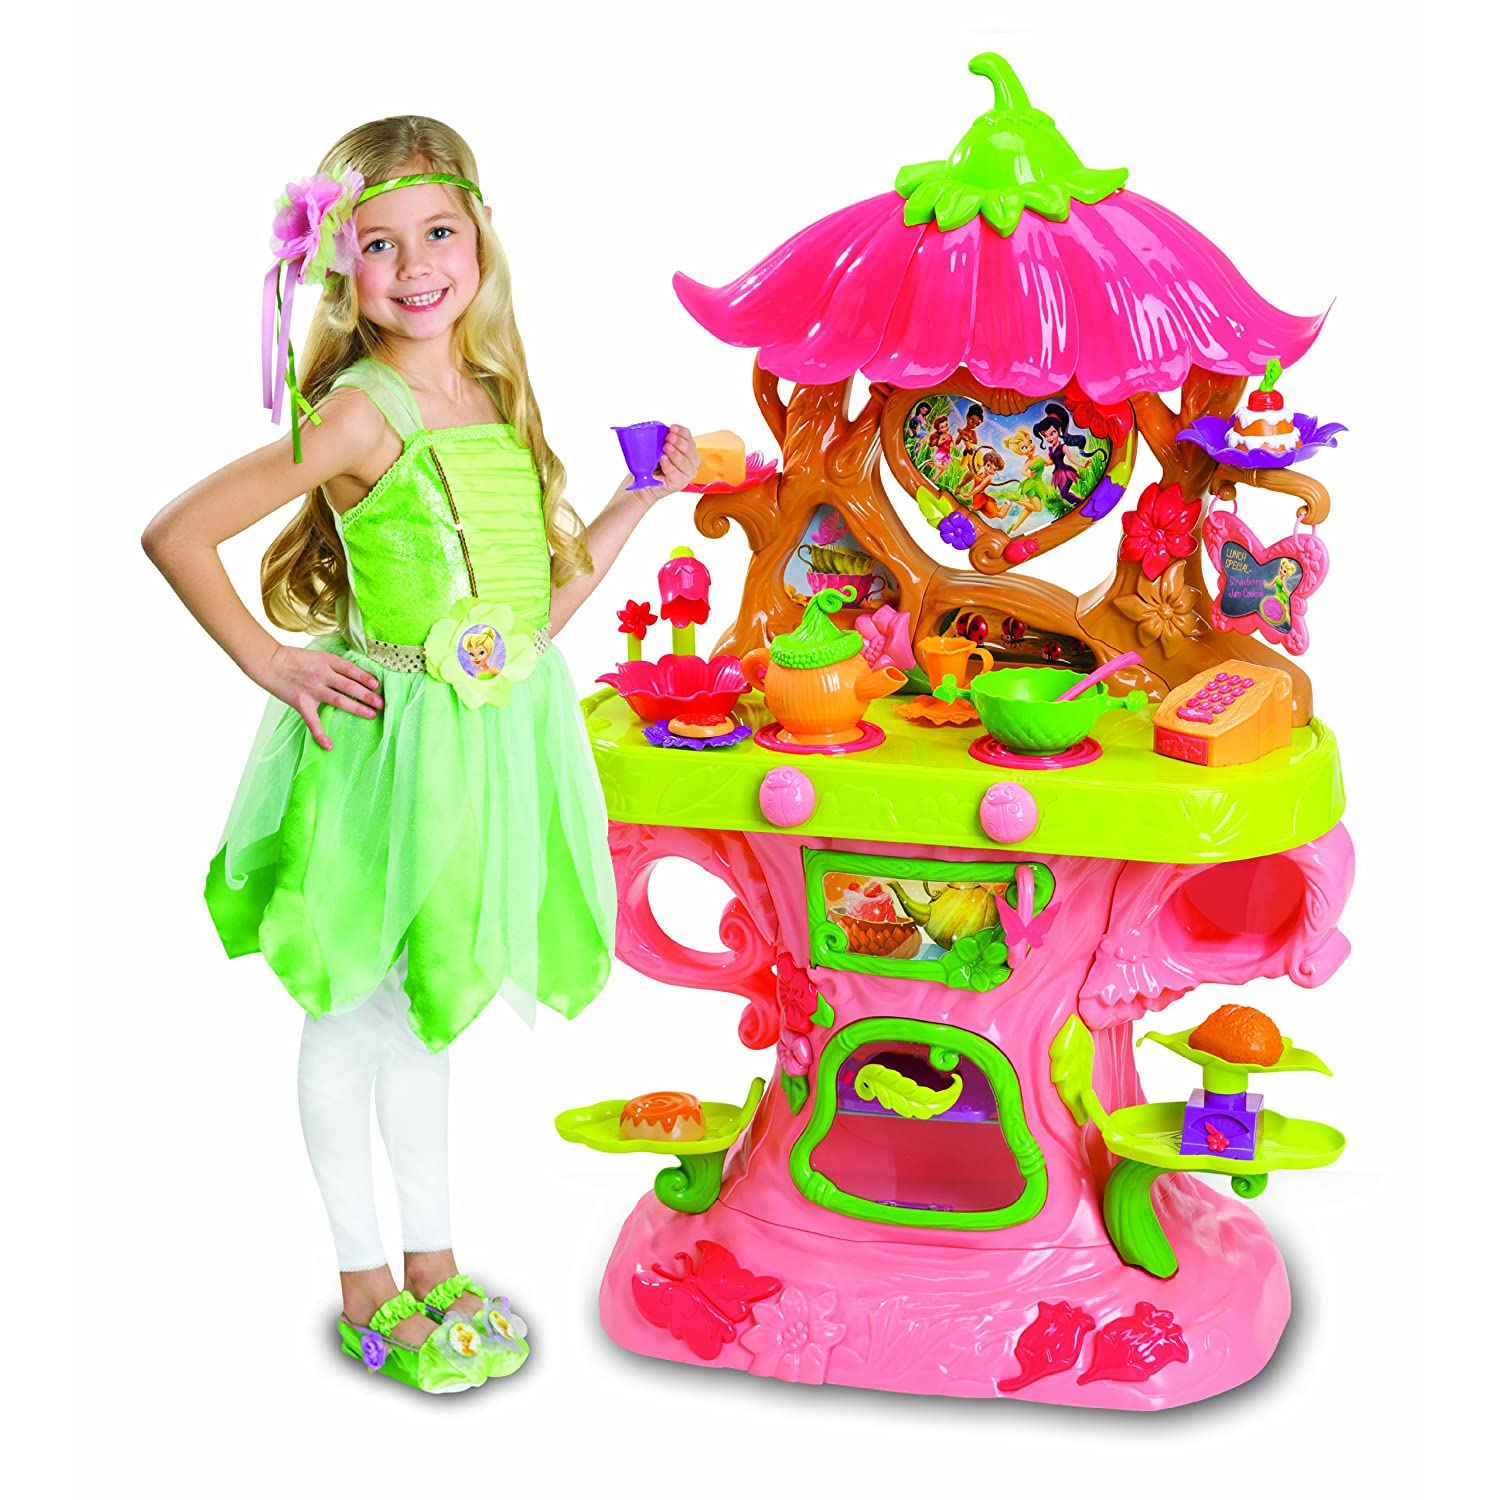 Click to buy Disney Fairies Tinker Bell Talking Café from Amazon!